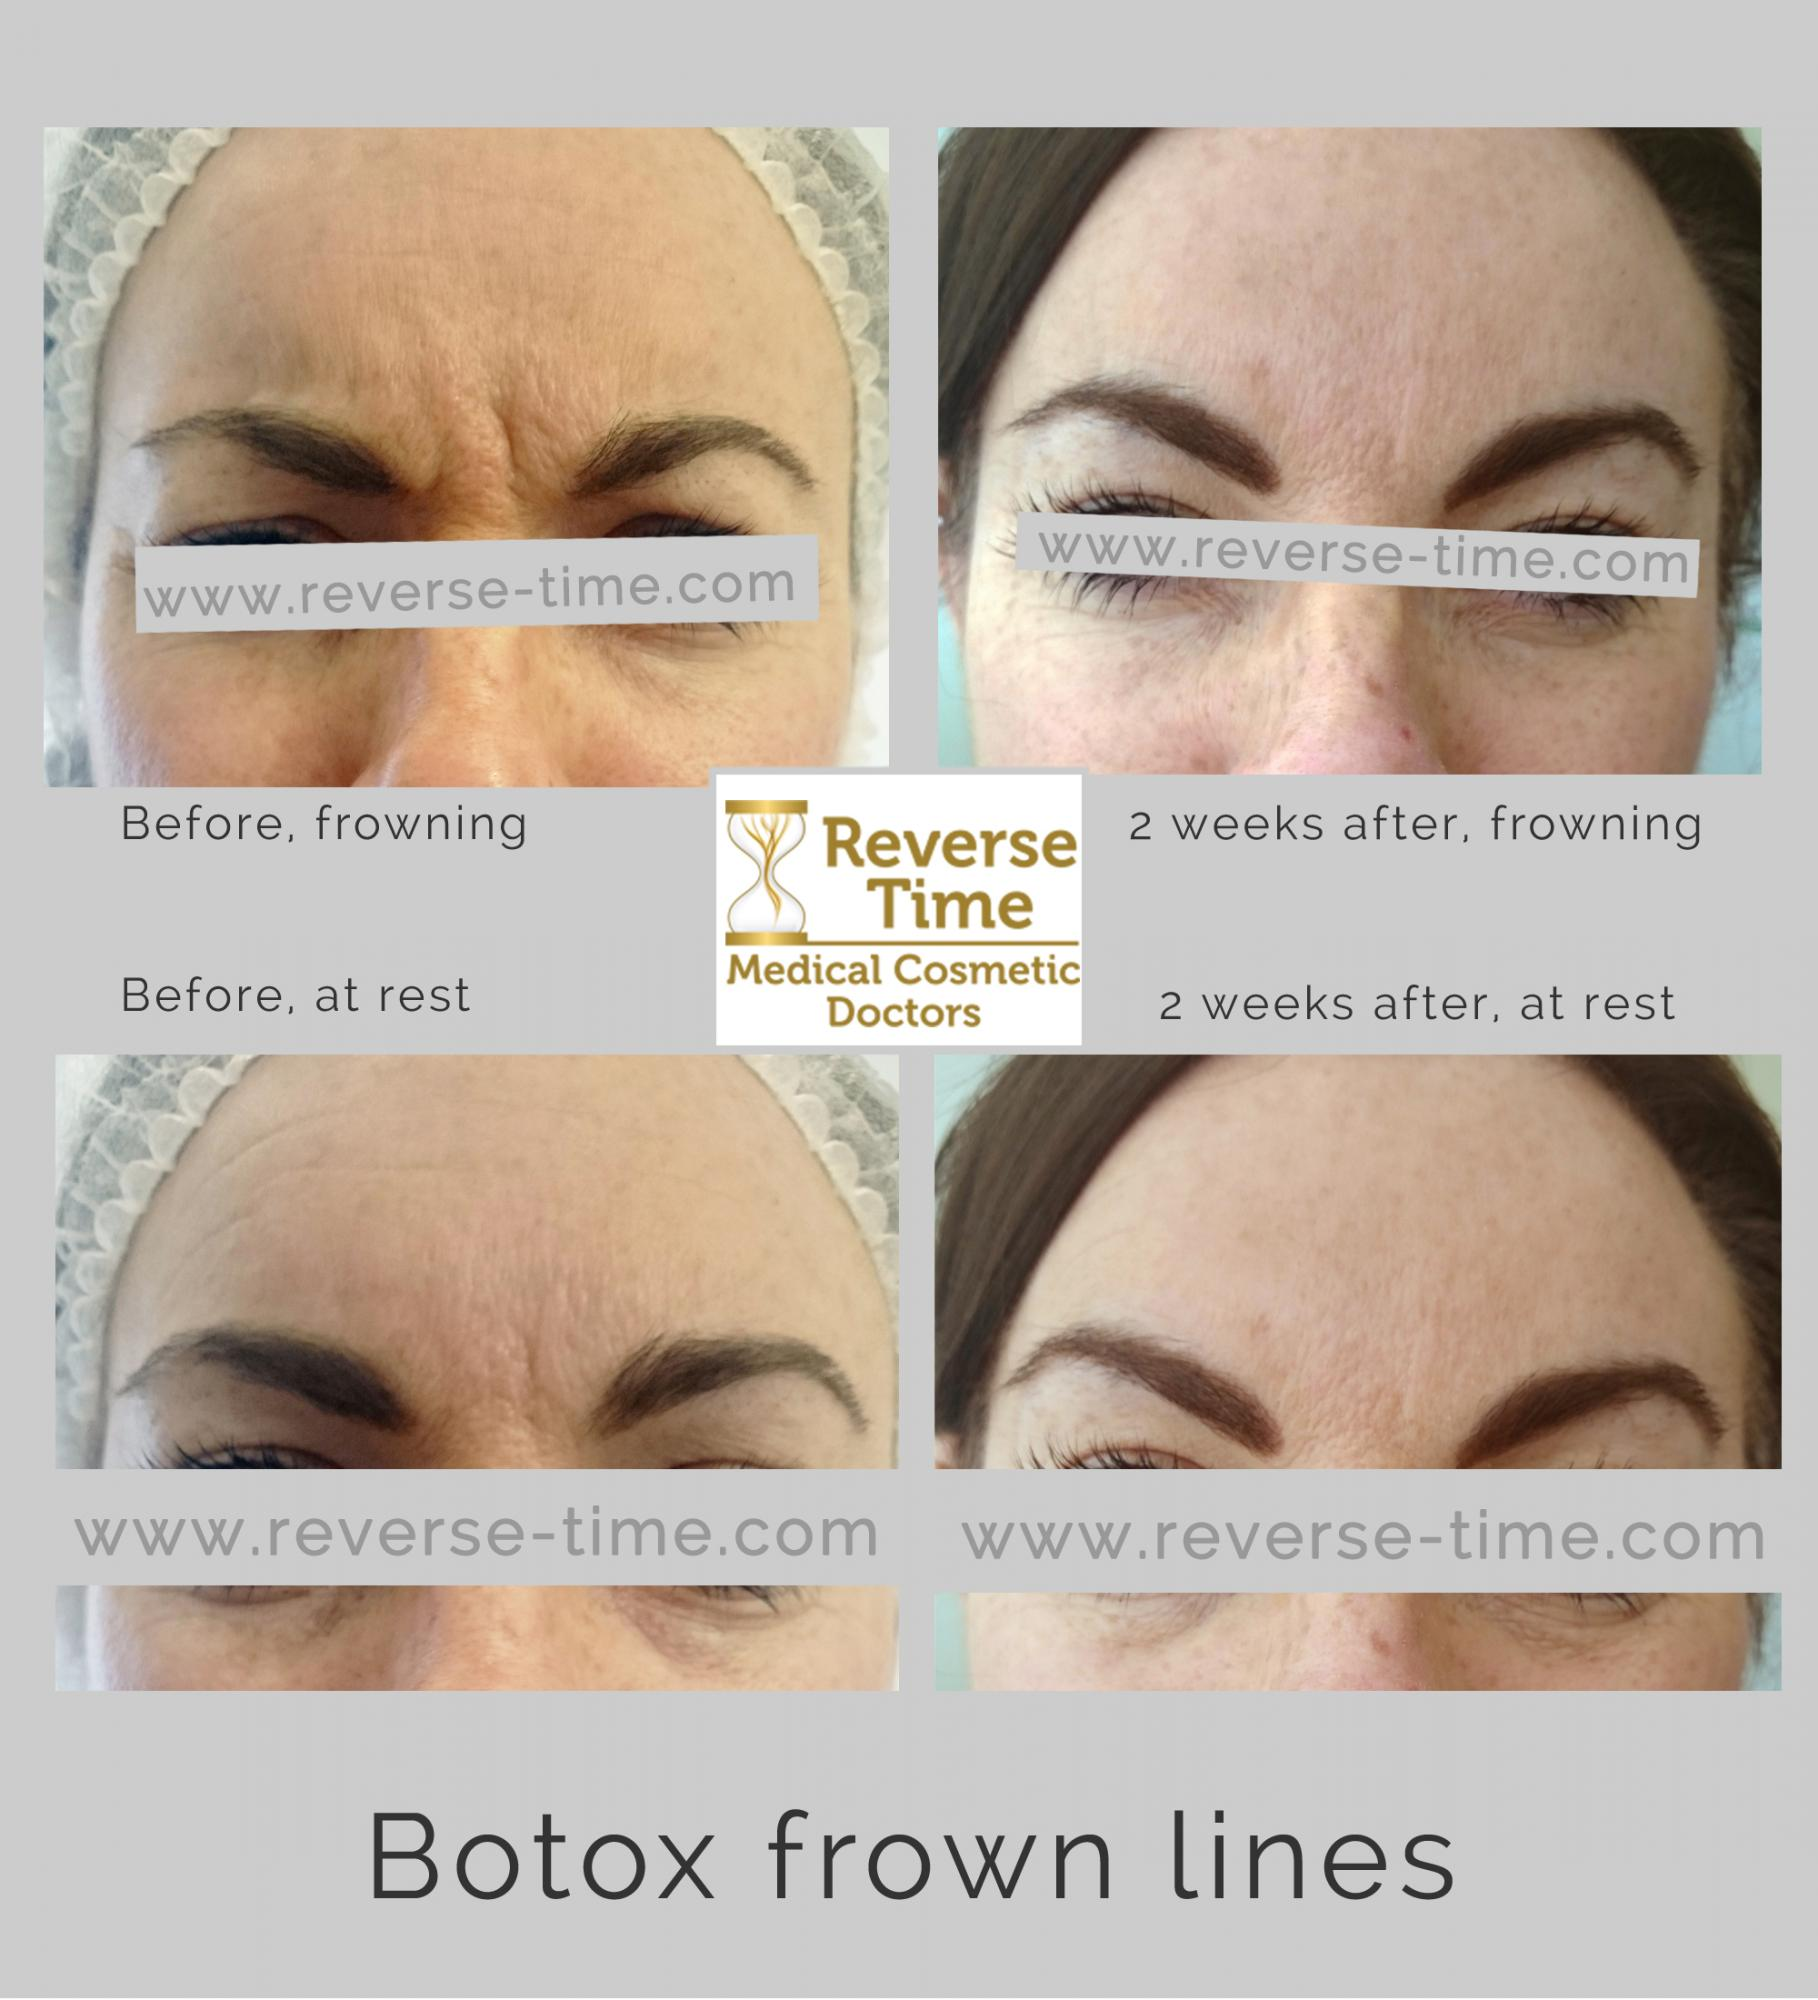 frown lines before after botox photos